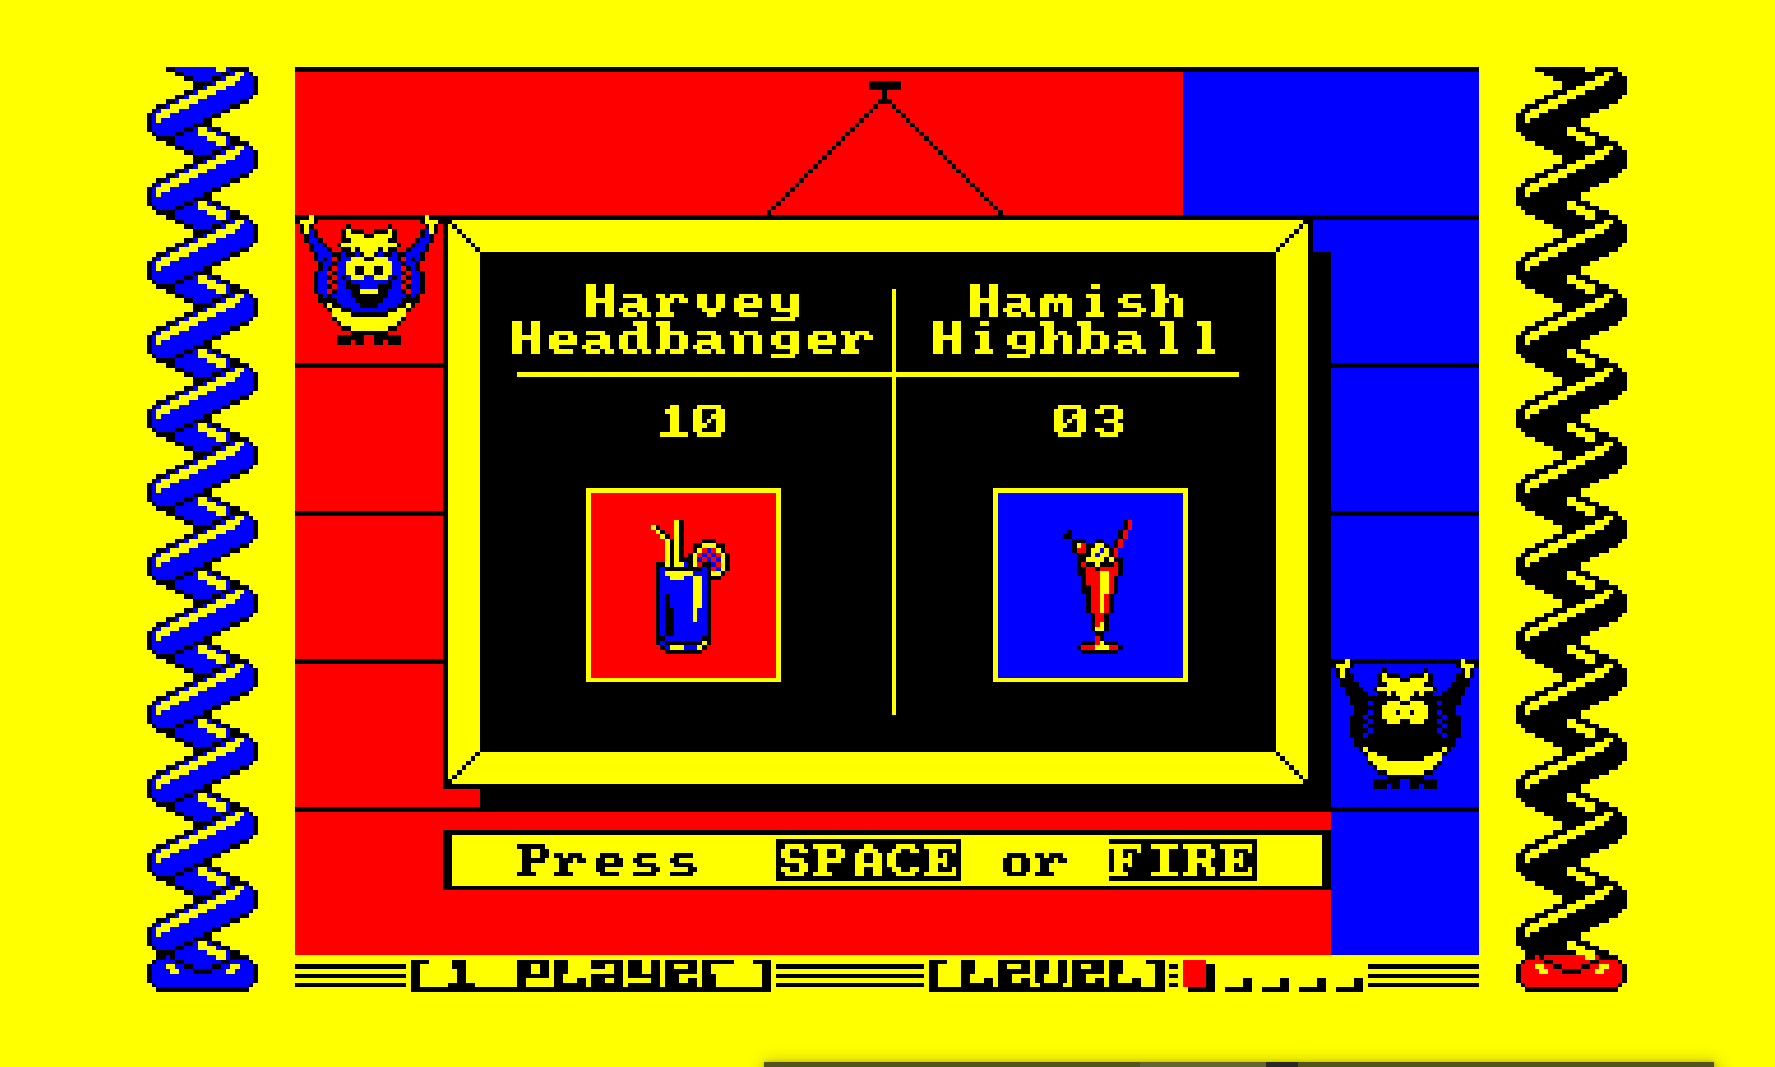 A screen shot from the Amstrad CPC version of Harvey Headbanger.